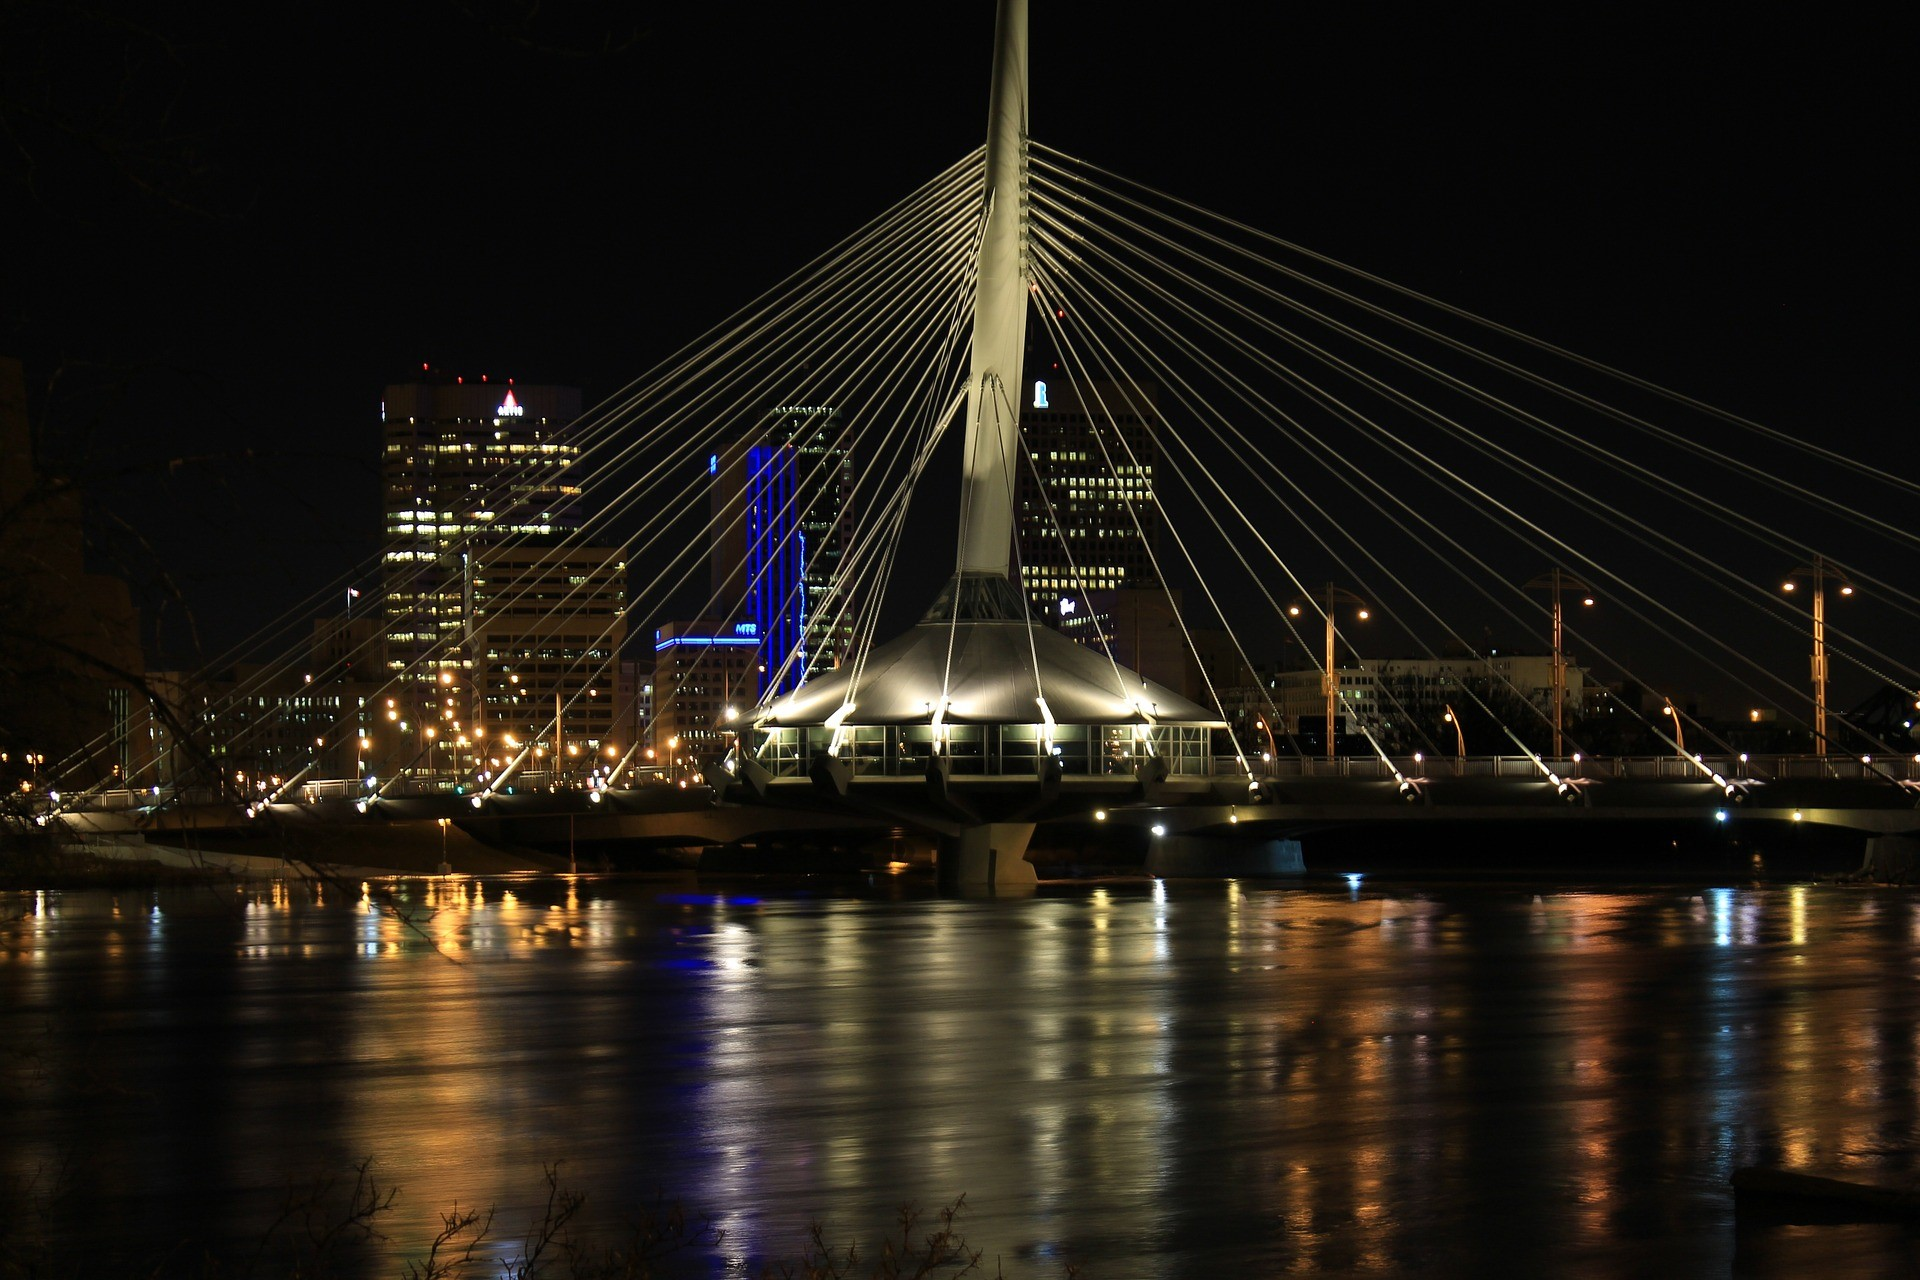 A view of the Provencher Bridge and Winnipeg skyline at night